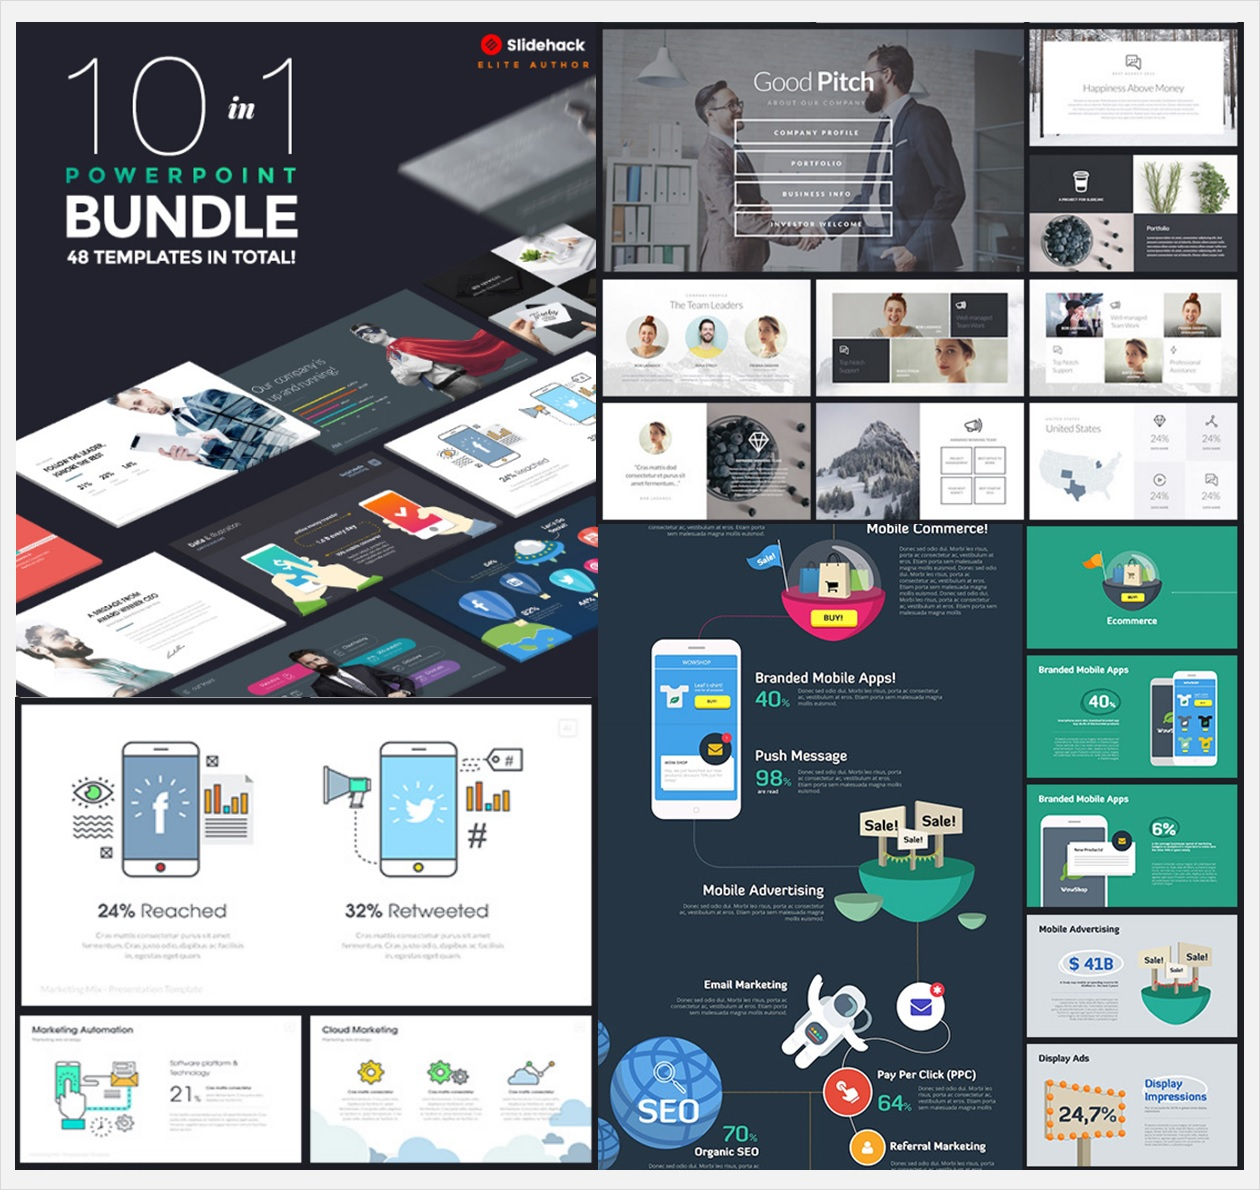 10 in 1 Pitch Bundle Template